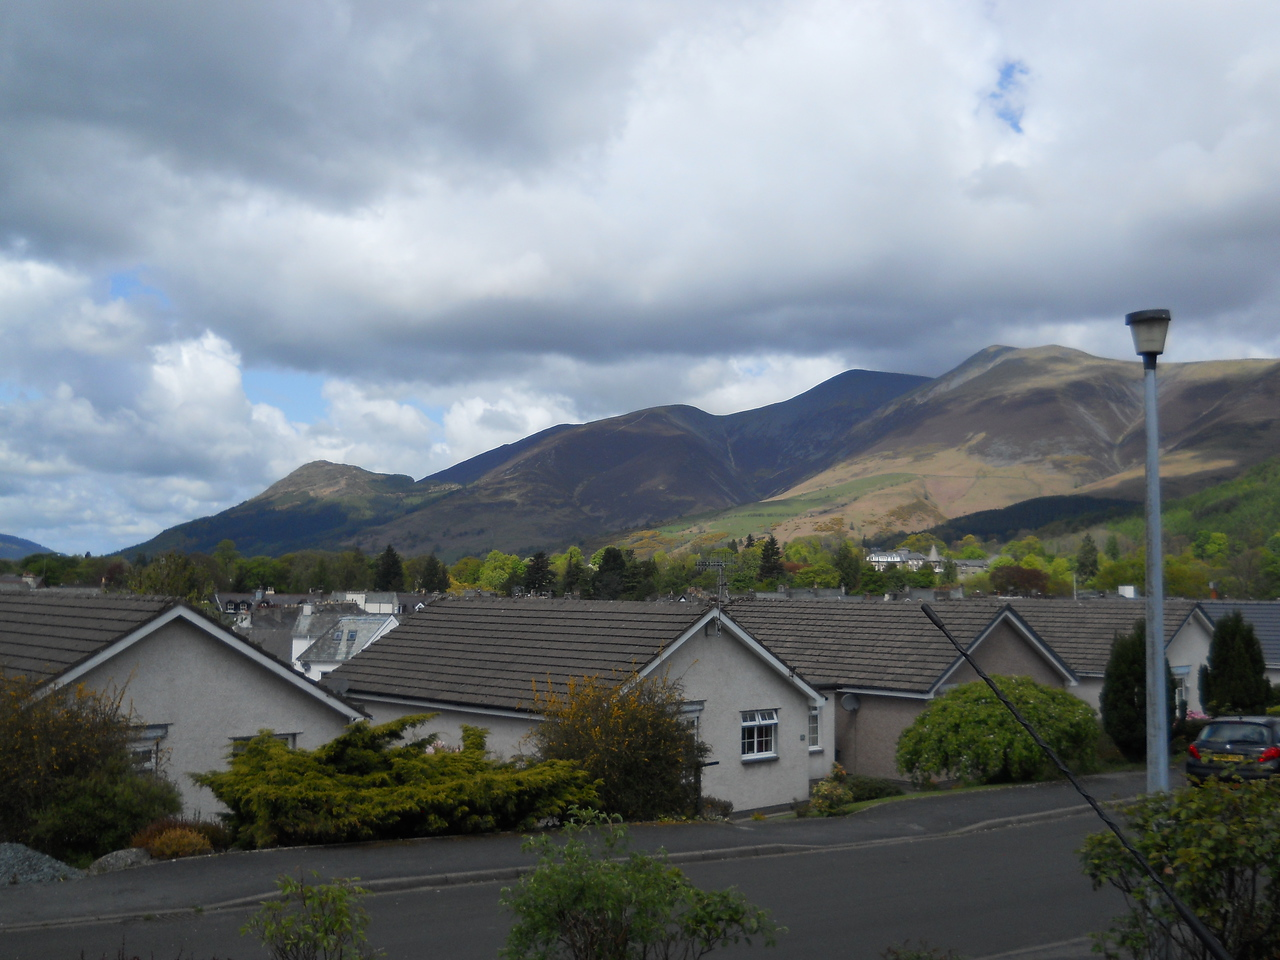 Landed in Manchester around 8:30am and headed for Keswick.  This is the view from Bob's driveway.